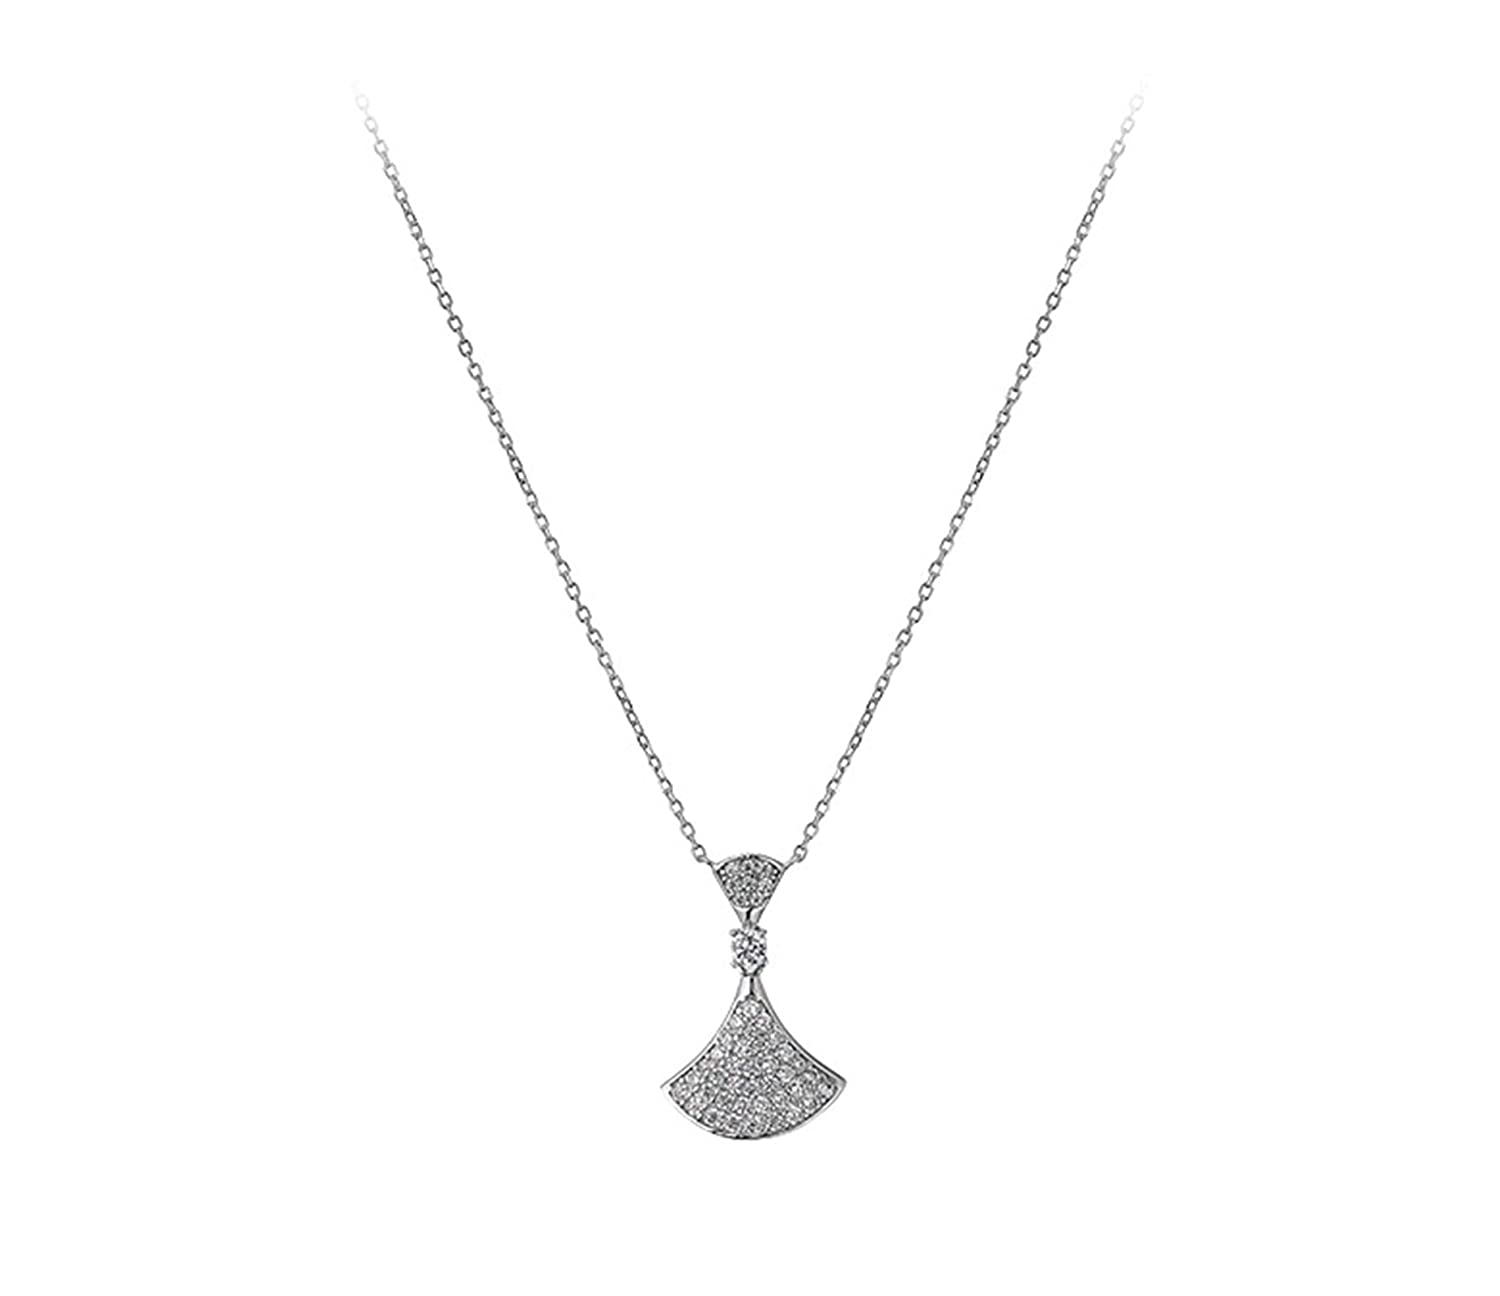 Daesar 925 Silver Necklace for Women Fan Shaped Necklace Cubic Zirconia Pendant Chain Length:41.5CM